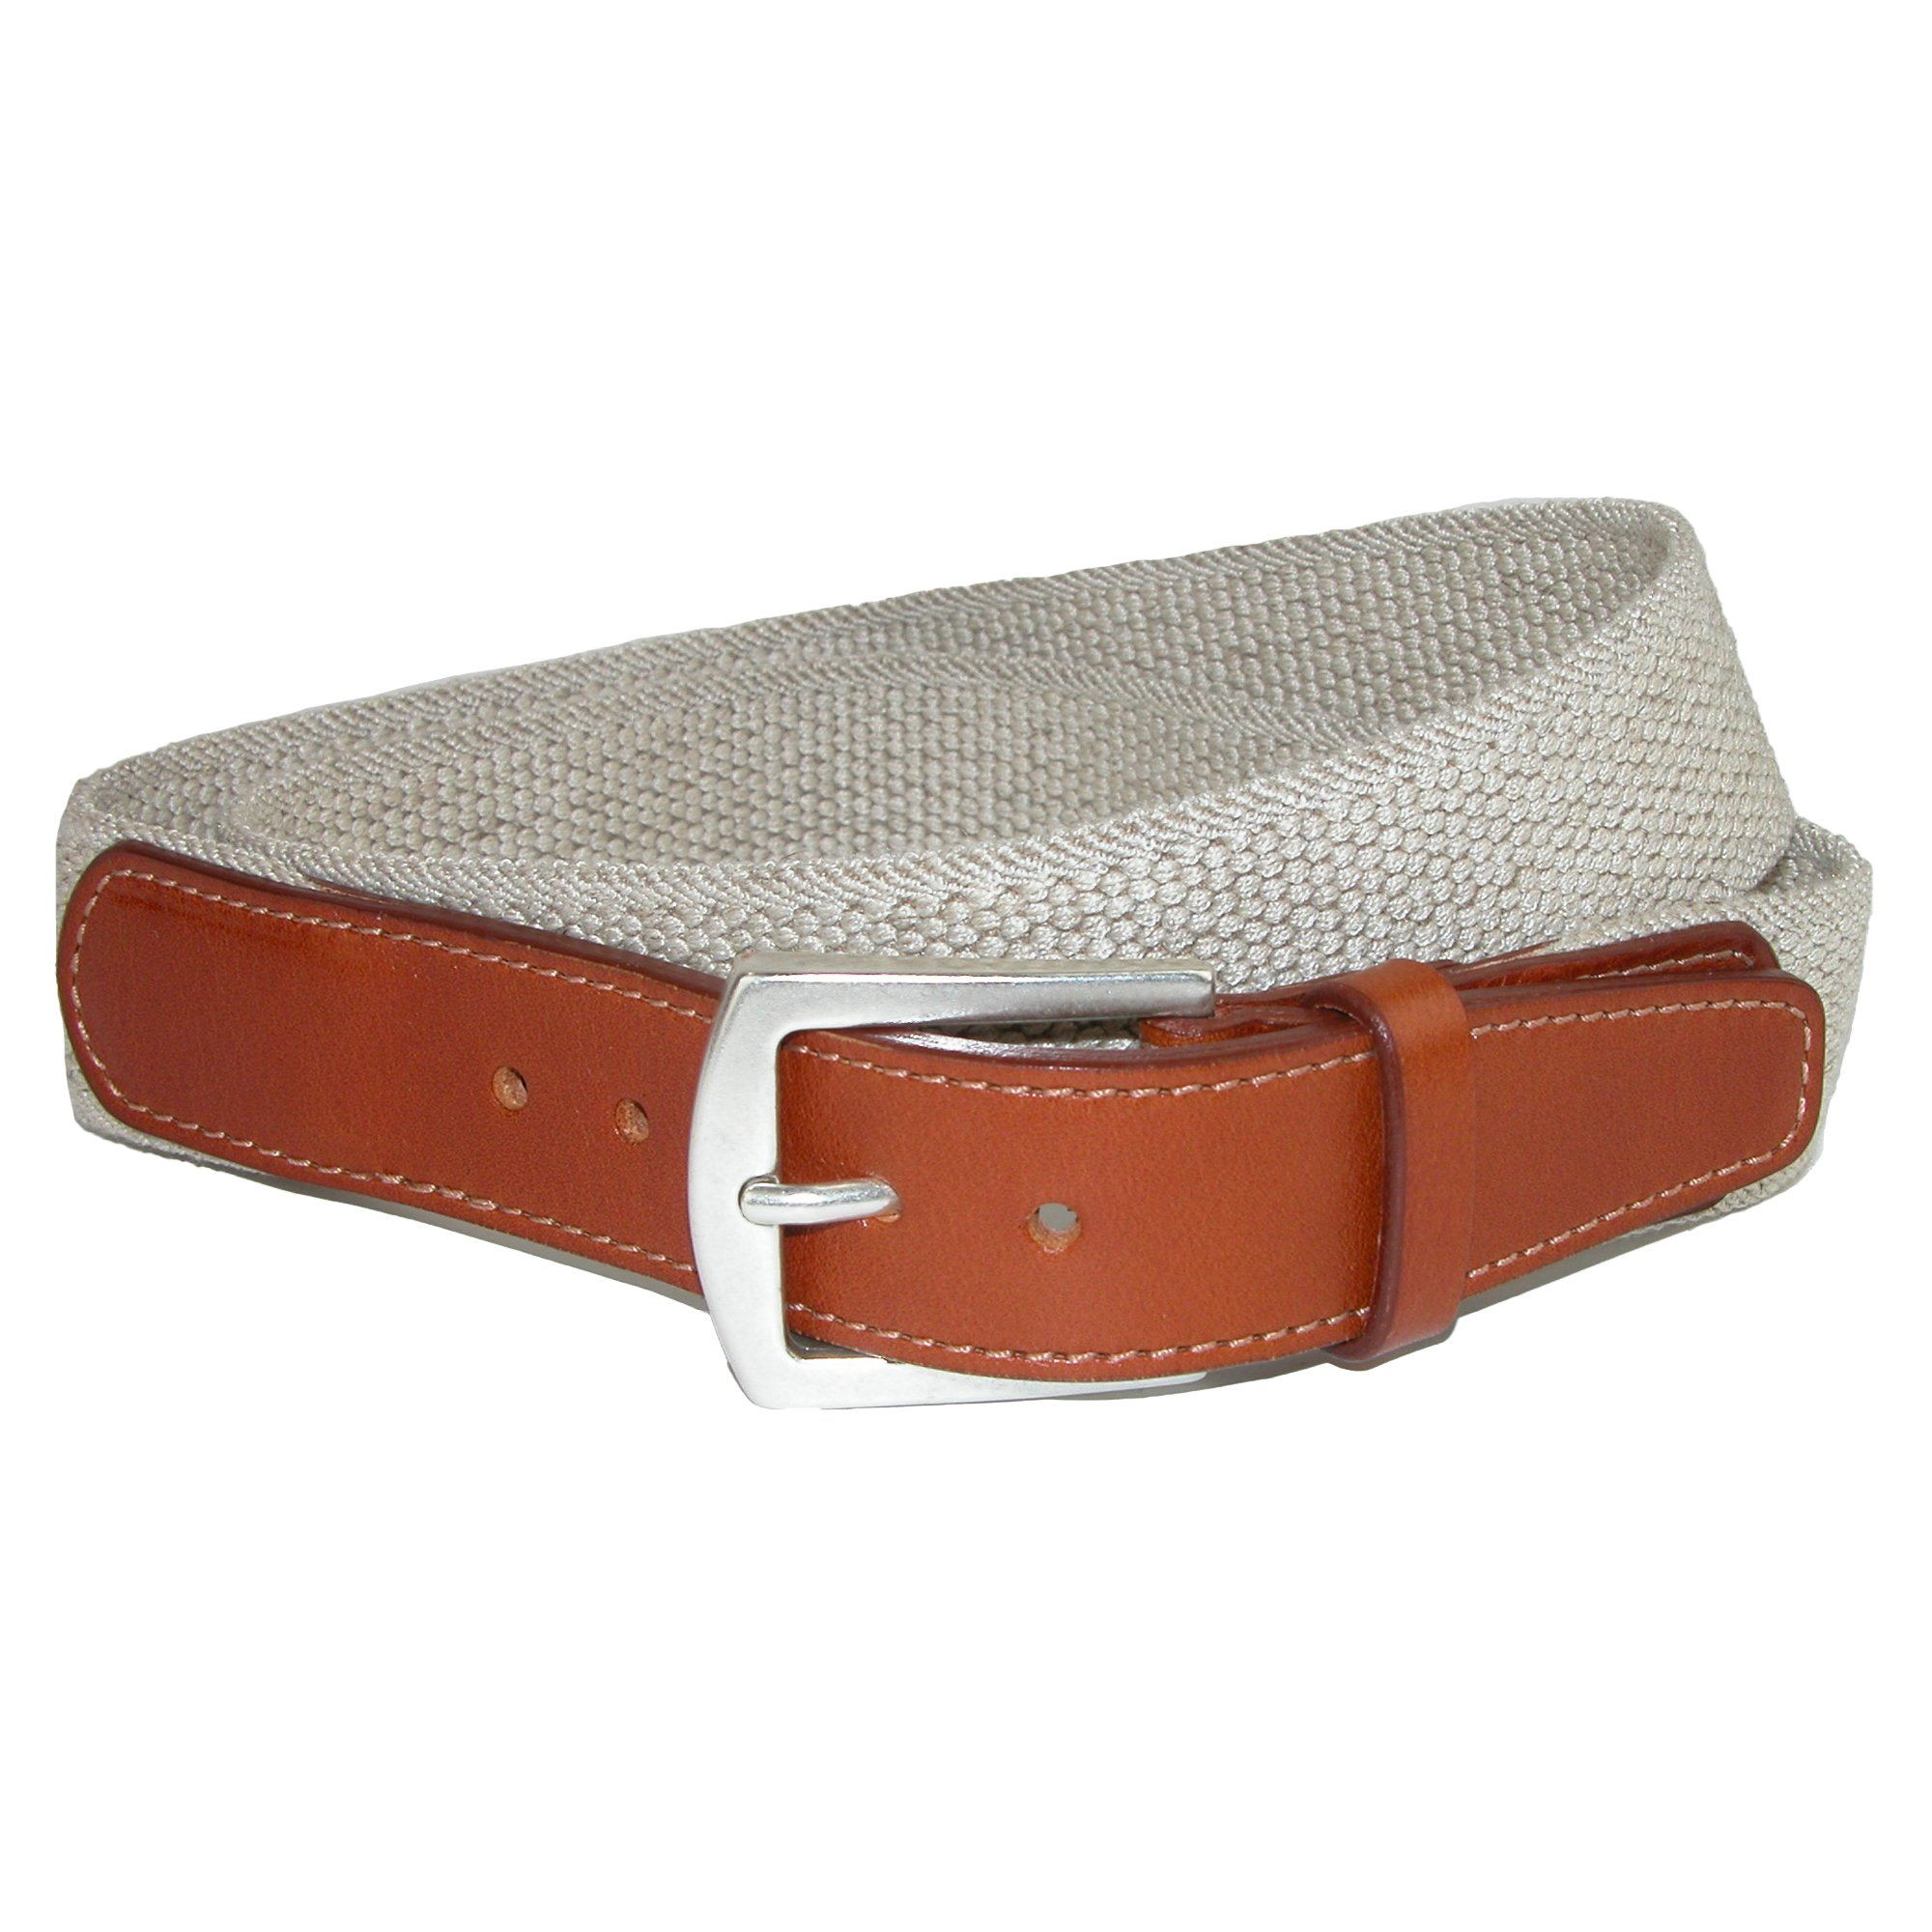 CrookhornDavis Men's Newport Pique Cotton Woven Elastic Belt, 34, Tan